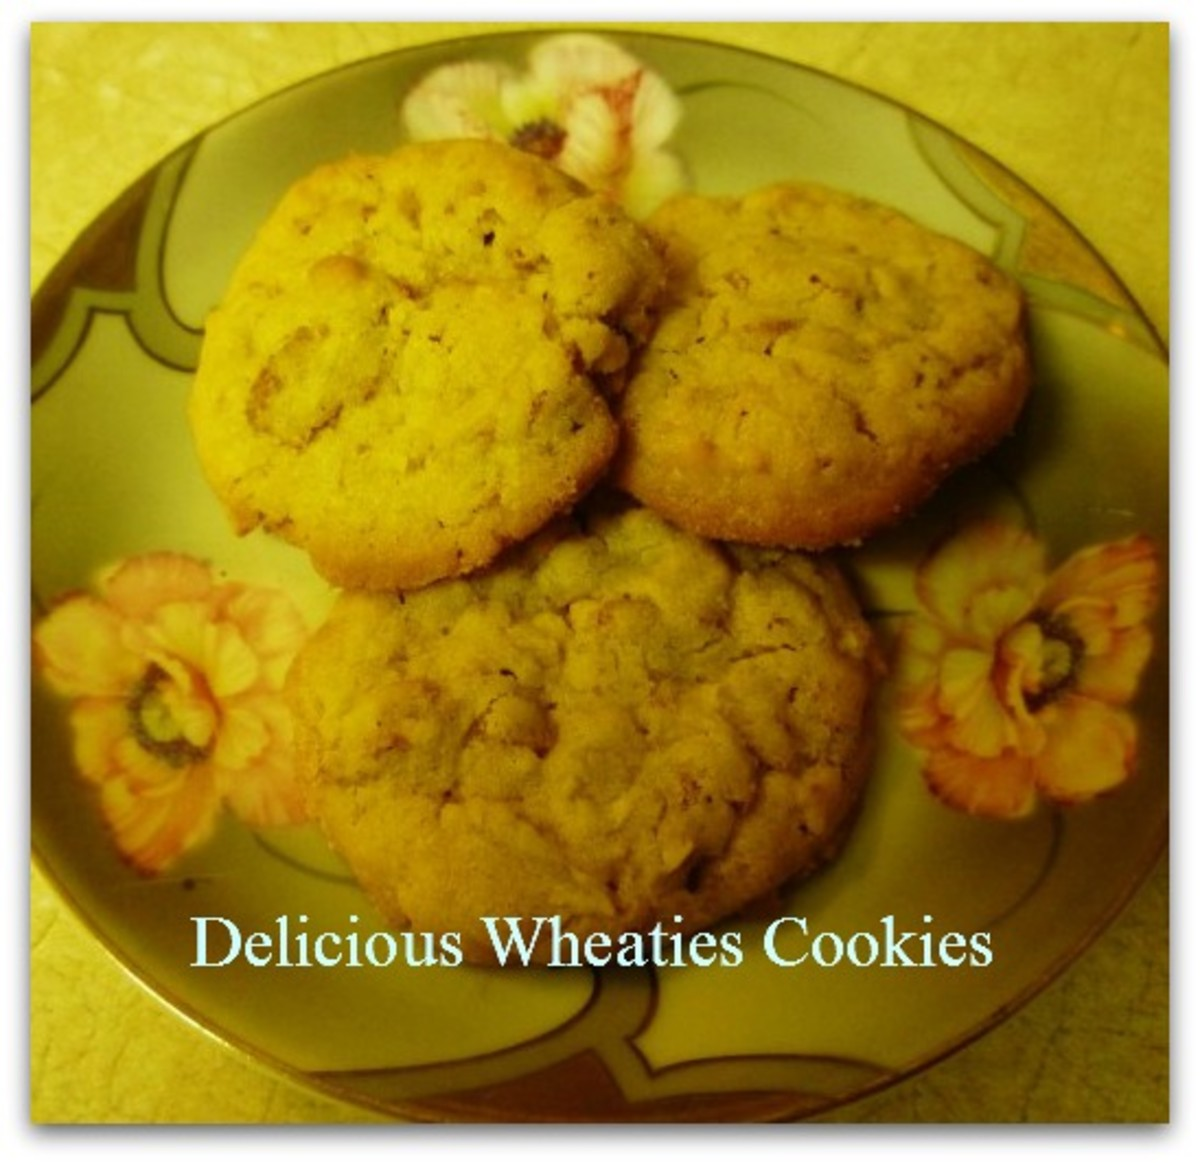 Easy to Make Homemade Wheaties Cookie Recipe with Step by Step Photos